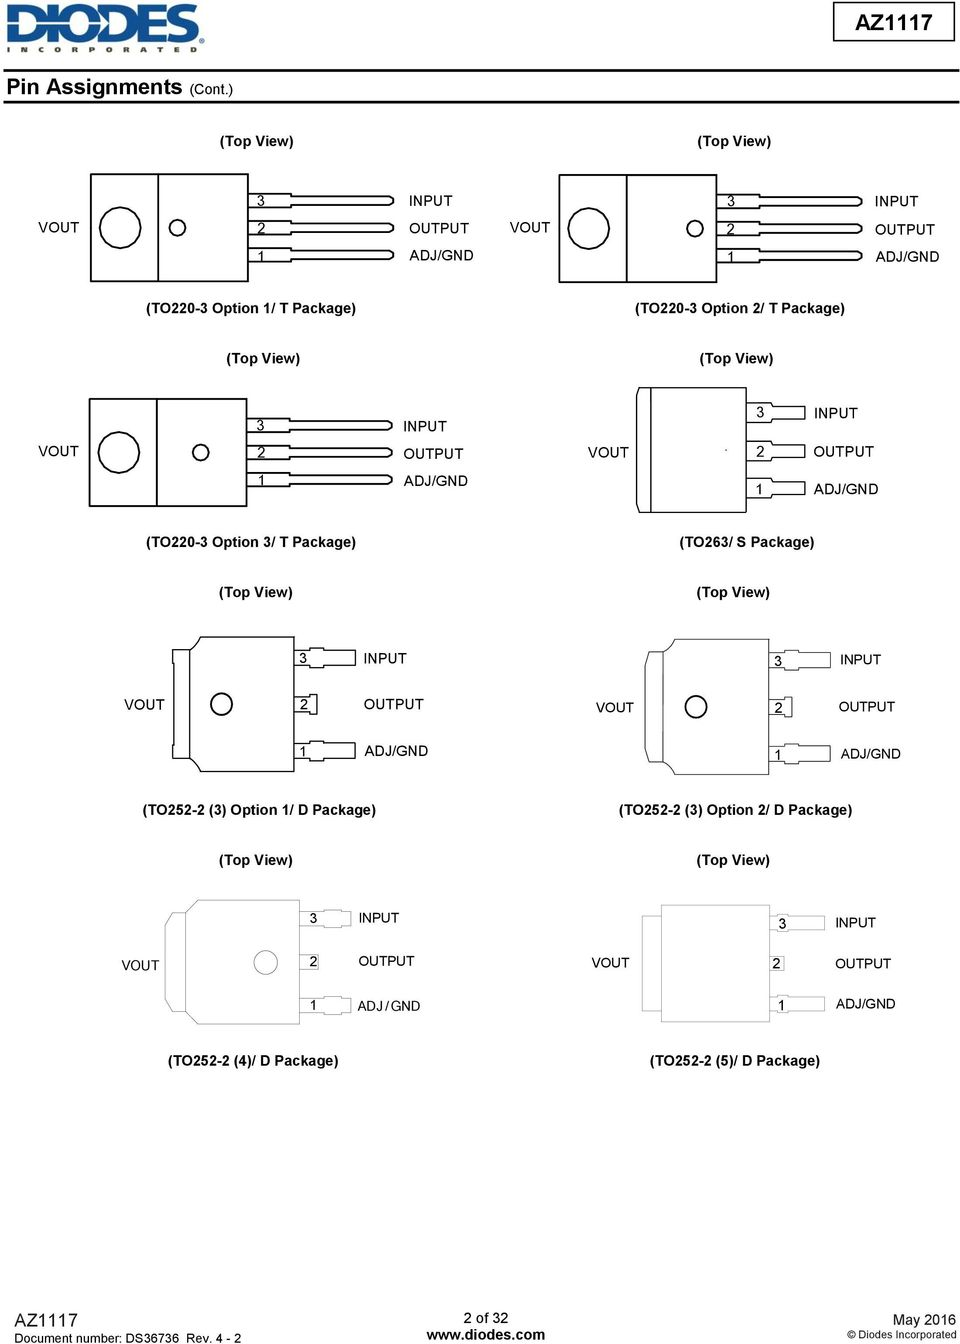 (Top View) (Top View) 3 INPUT 3 INPUT VOUT 2 OUTPUT VOUT 2 OUTPUT 1 ADJ/GND 1 ADJ/GND (TO220-3 Option 3/ T Package) (TO263/ S Package) (Top View) (Top